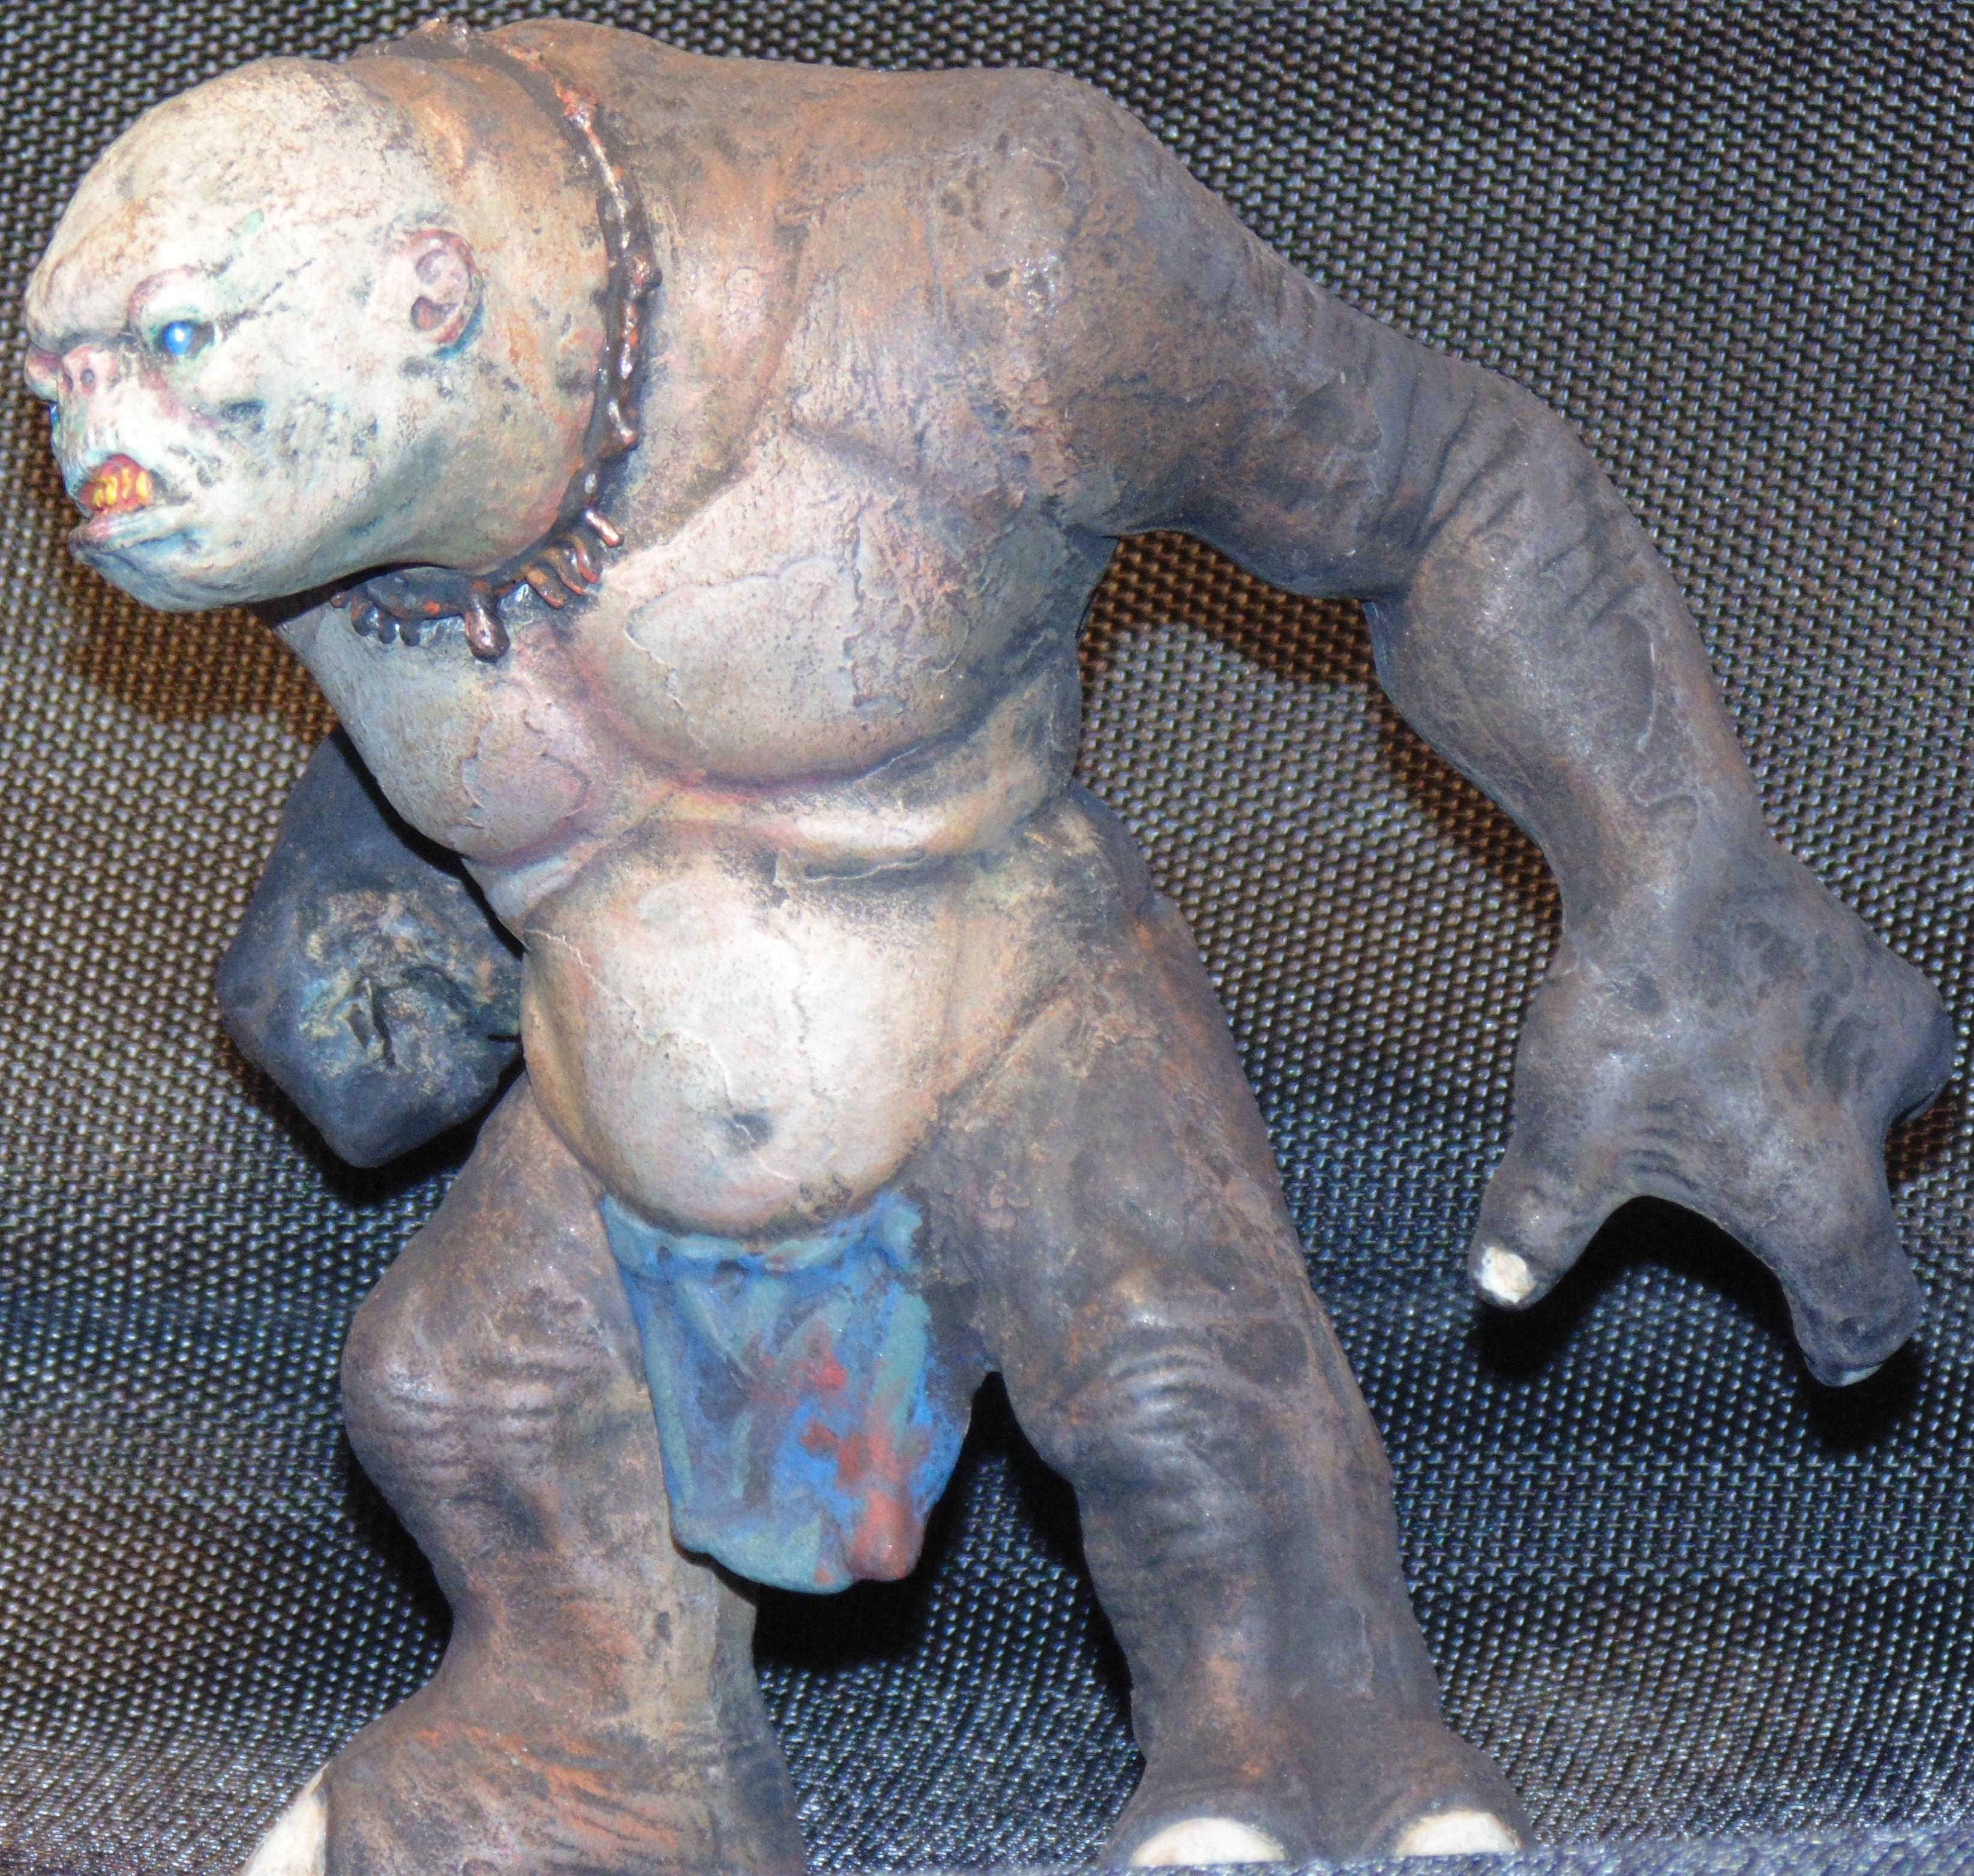 Ape, Cave, Conversion, Dead, Lord Of The Rings, Magical, Repaint, Repainted, Troll